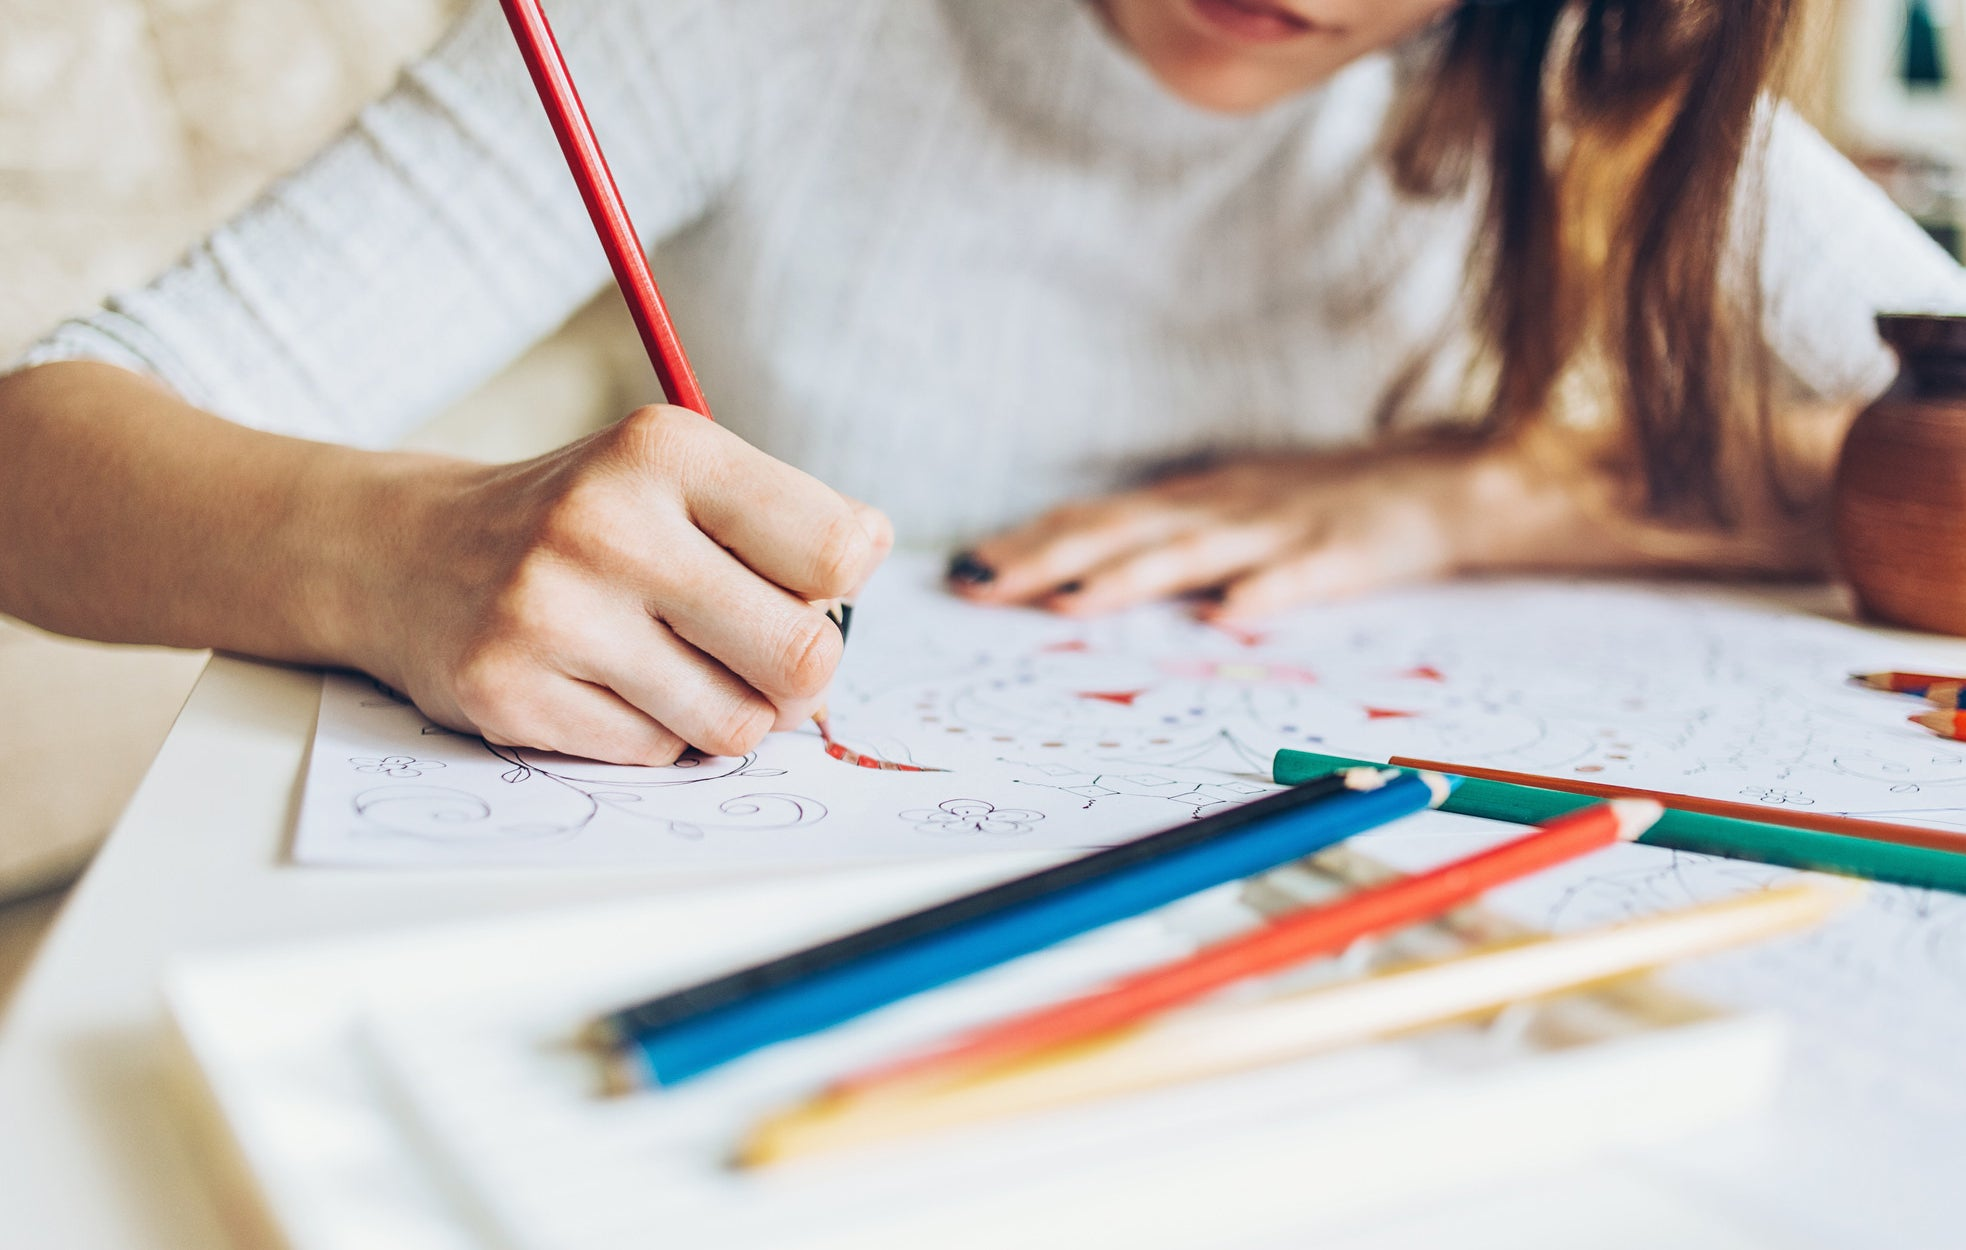 A woman coloring with colored pencils.